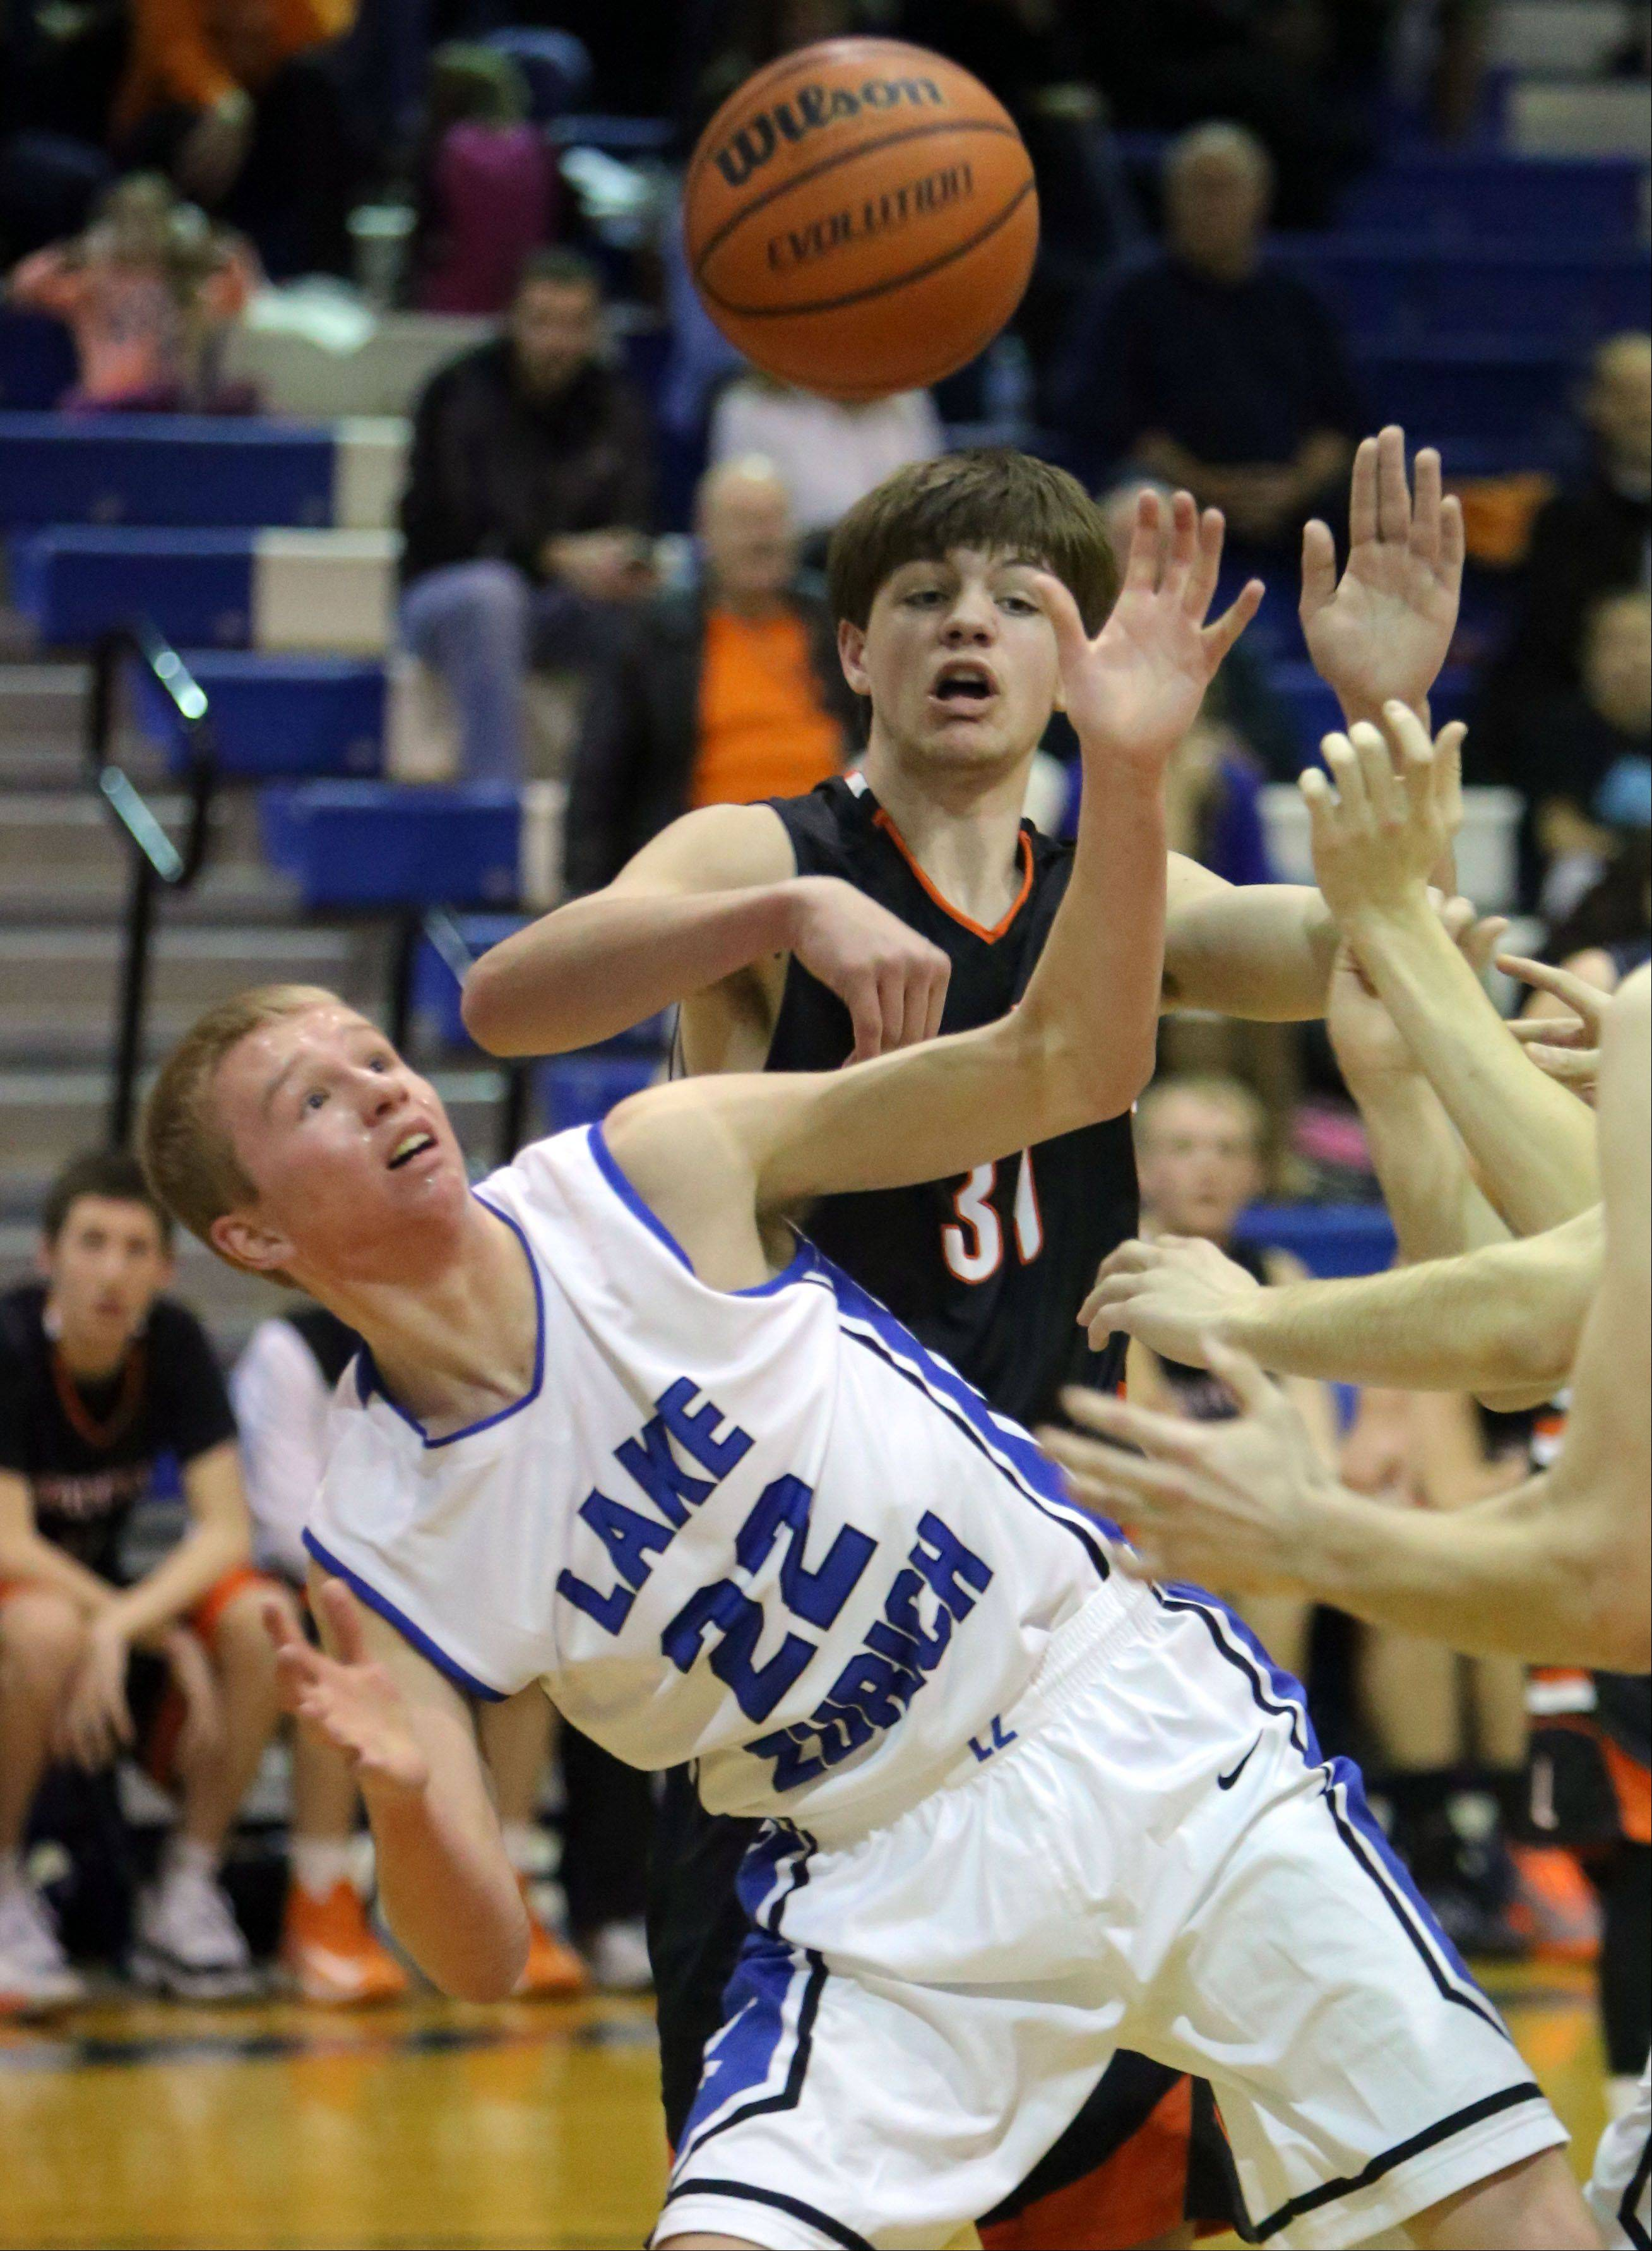 Lake Zurich's Brad Kruse, left, and Libertyville's Joe Borcia battle for a rebound .